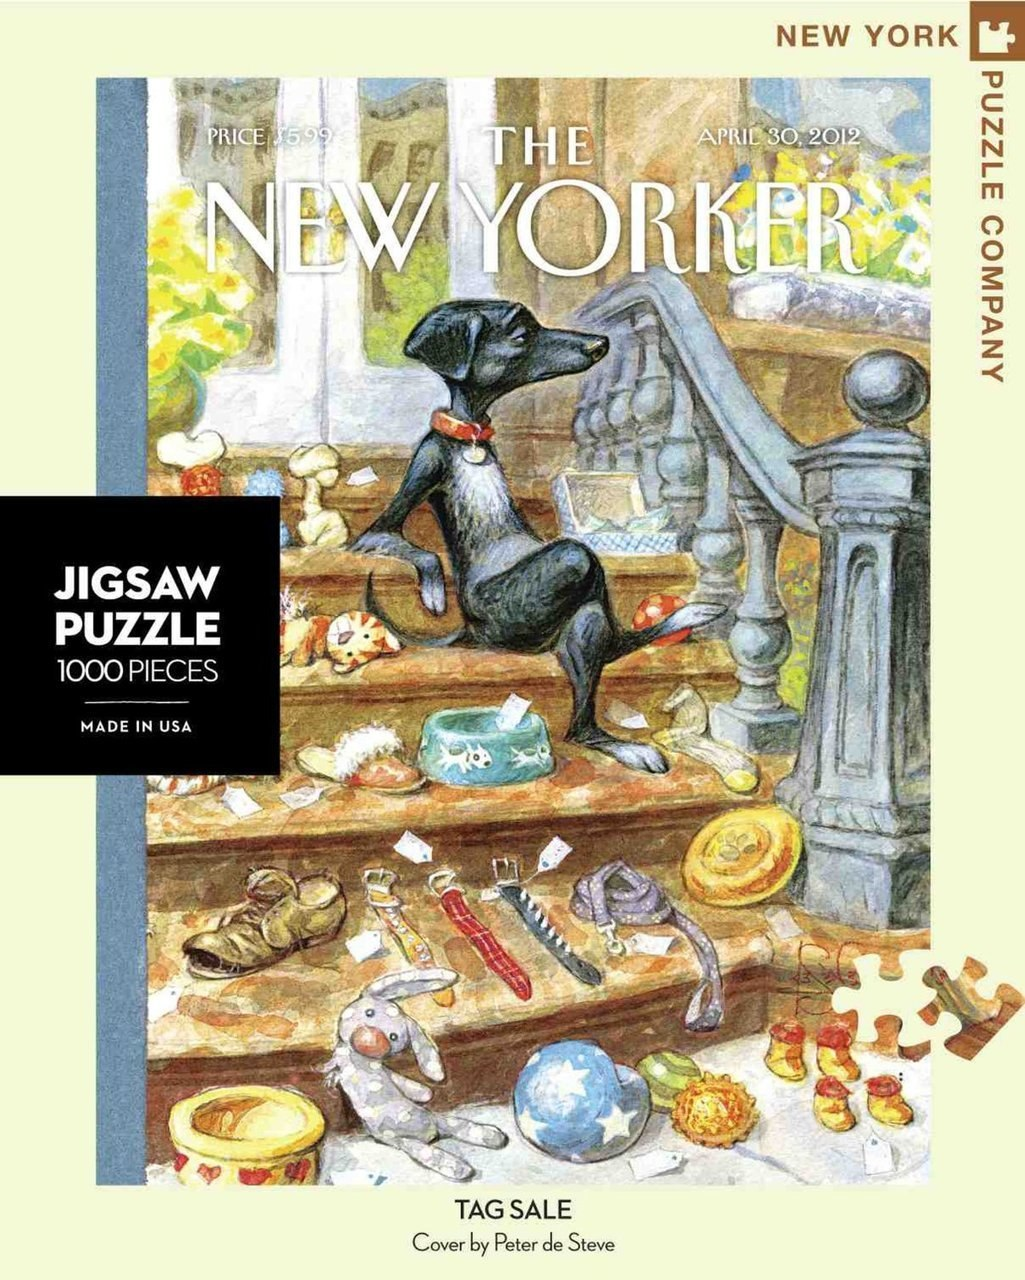 Tag Sale - 1000pc Jigsaw Puzzle by New York Puzzle Co.